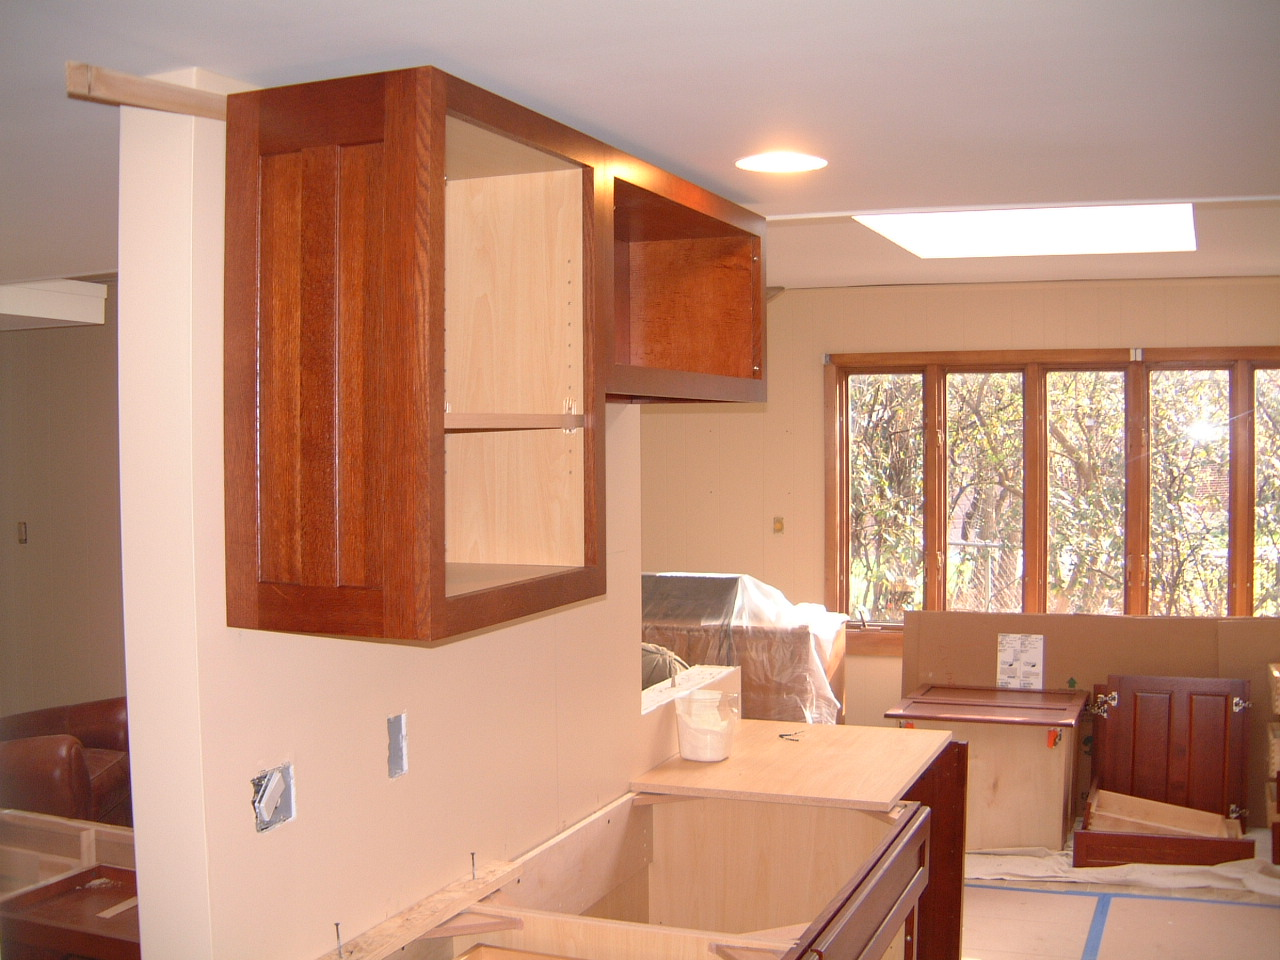 springfield kitchen cabinet install remodeling designs inc springfield kitchen remodel